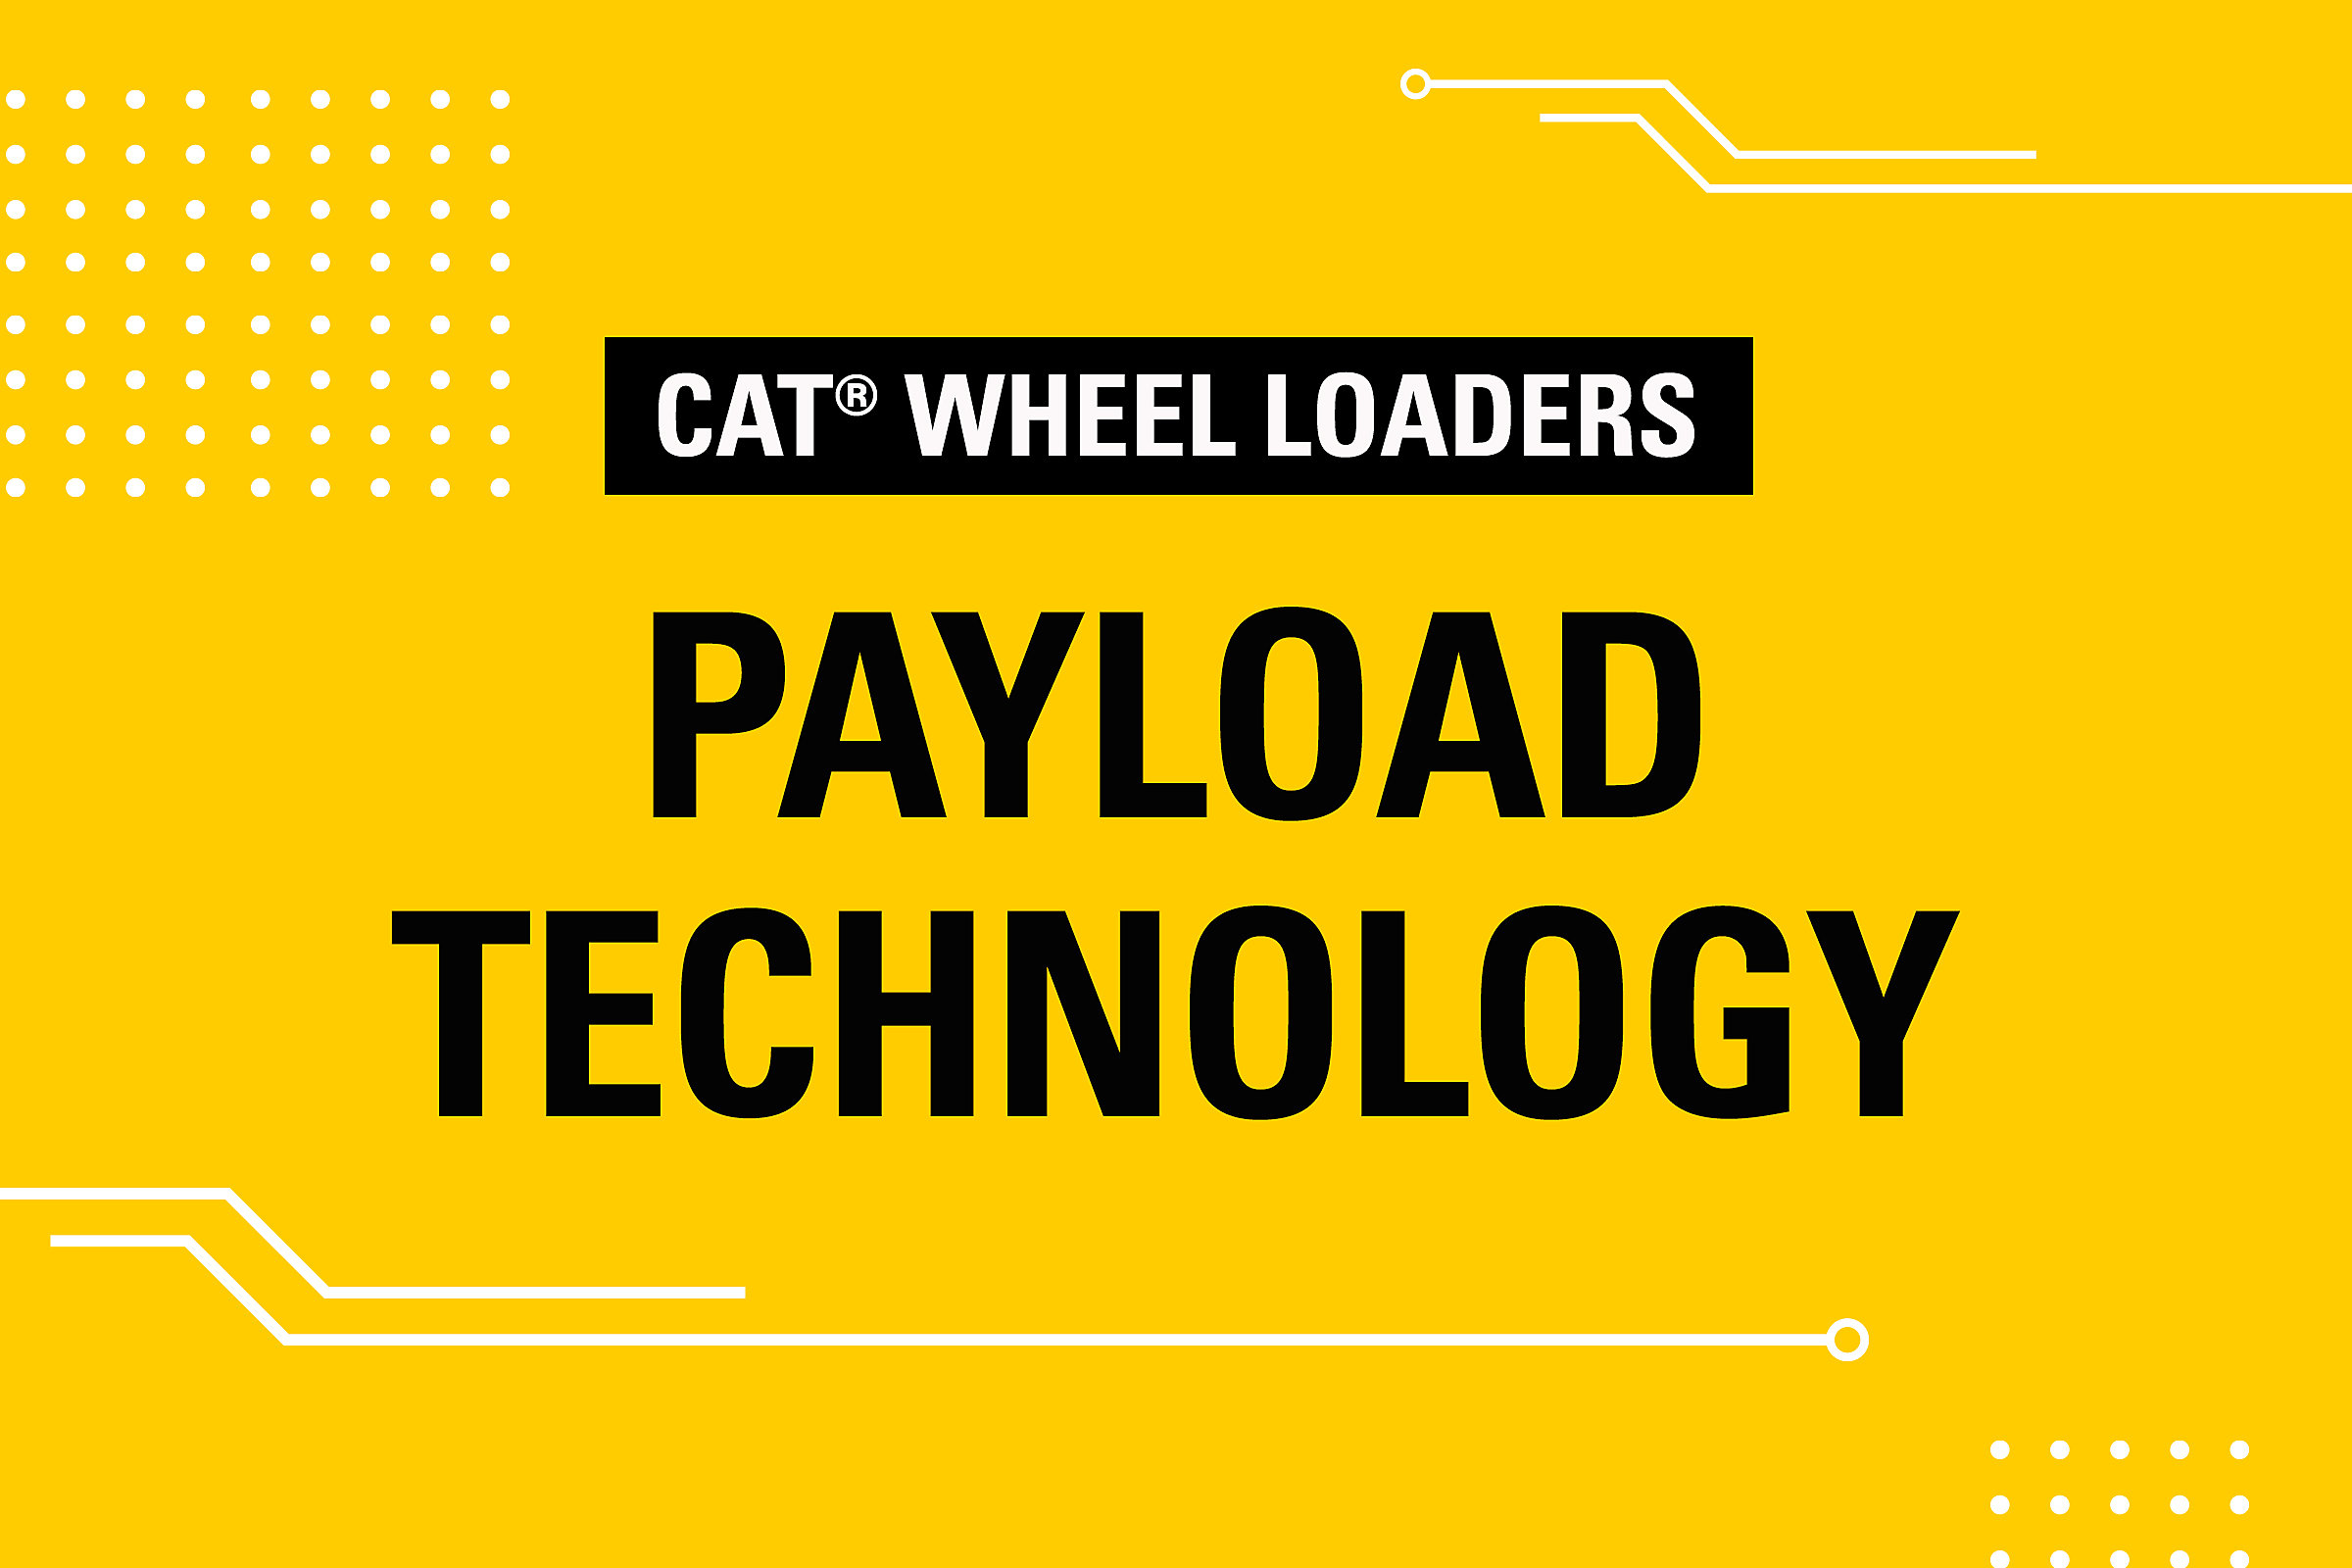 Wheel Loaders payload technology